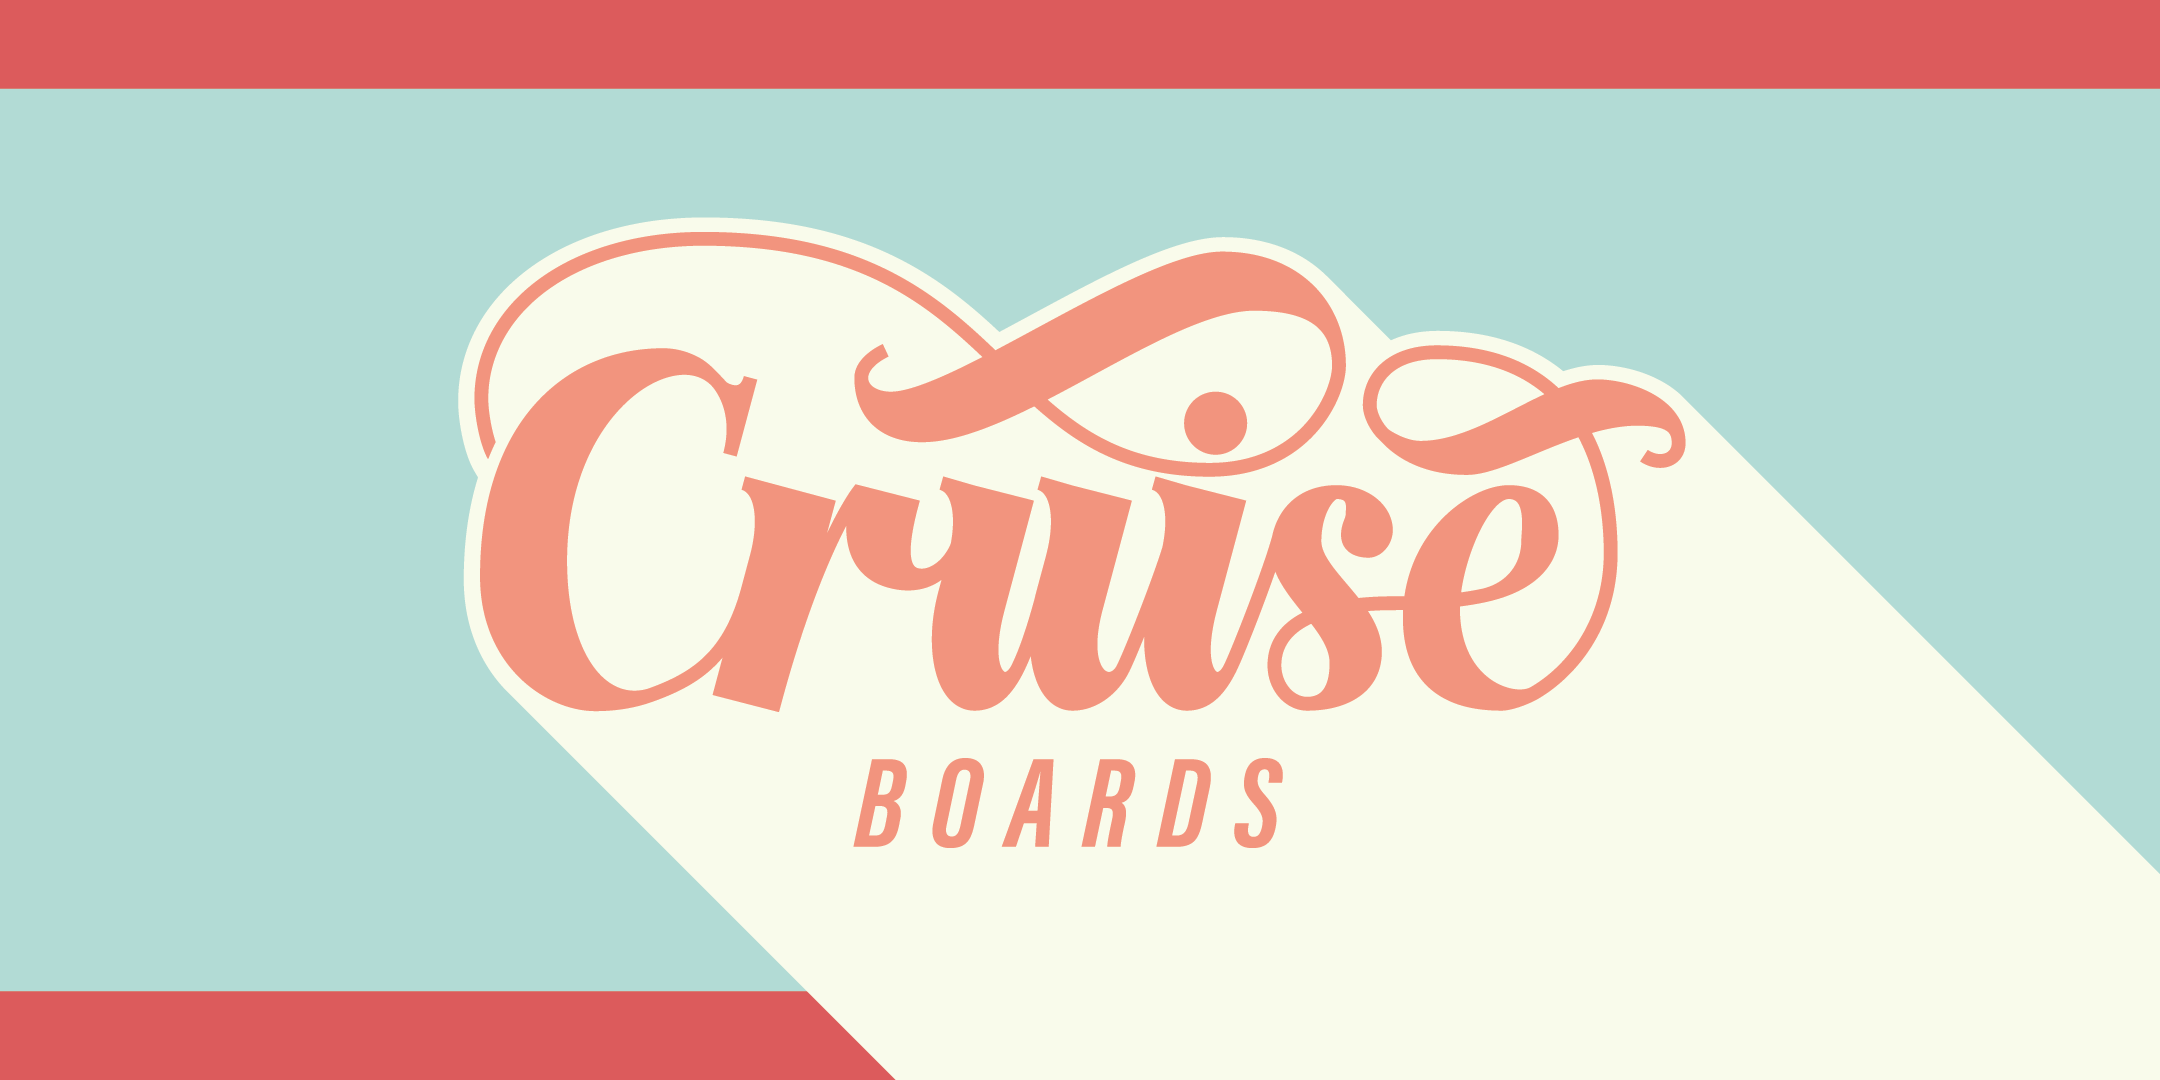 Cruise Boards lettering